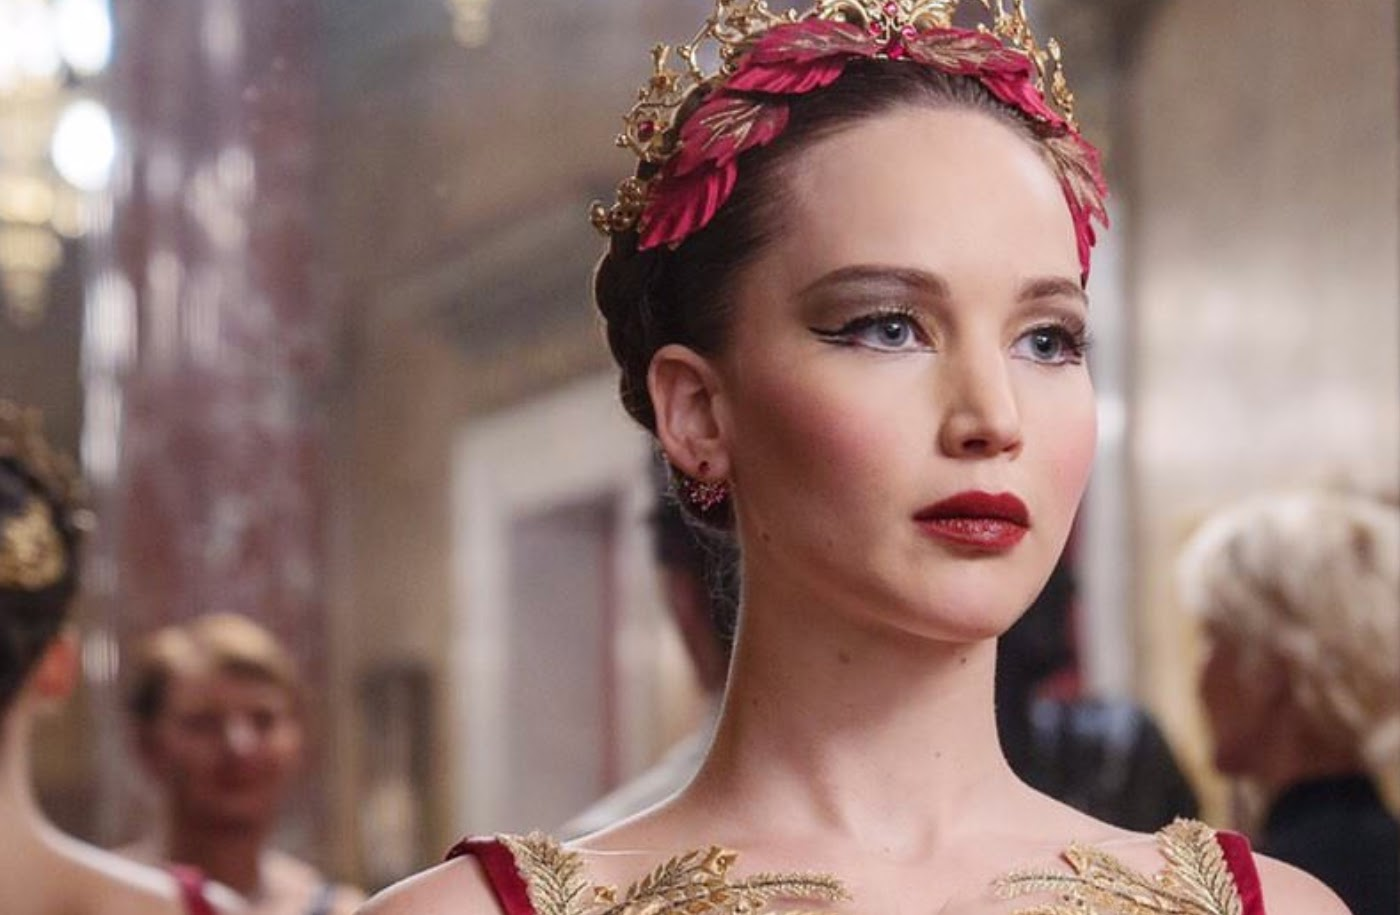 Jennifer Lawrence in the movie Red Sparrow